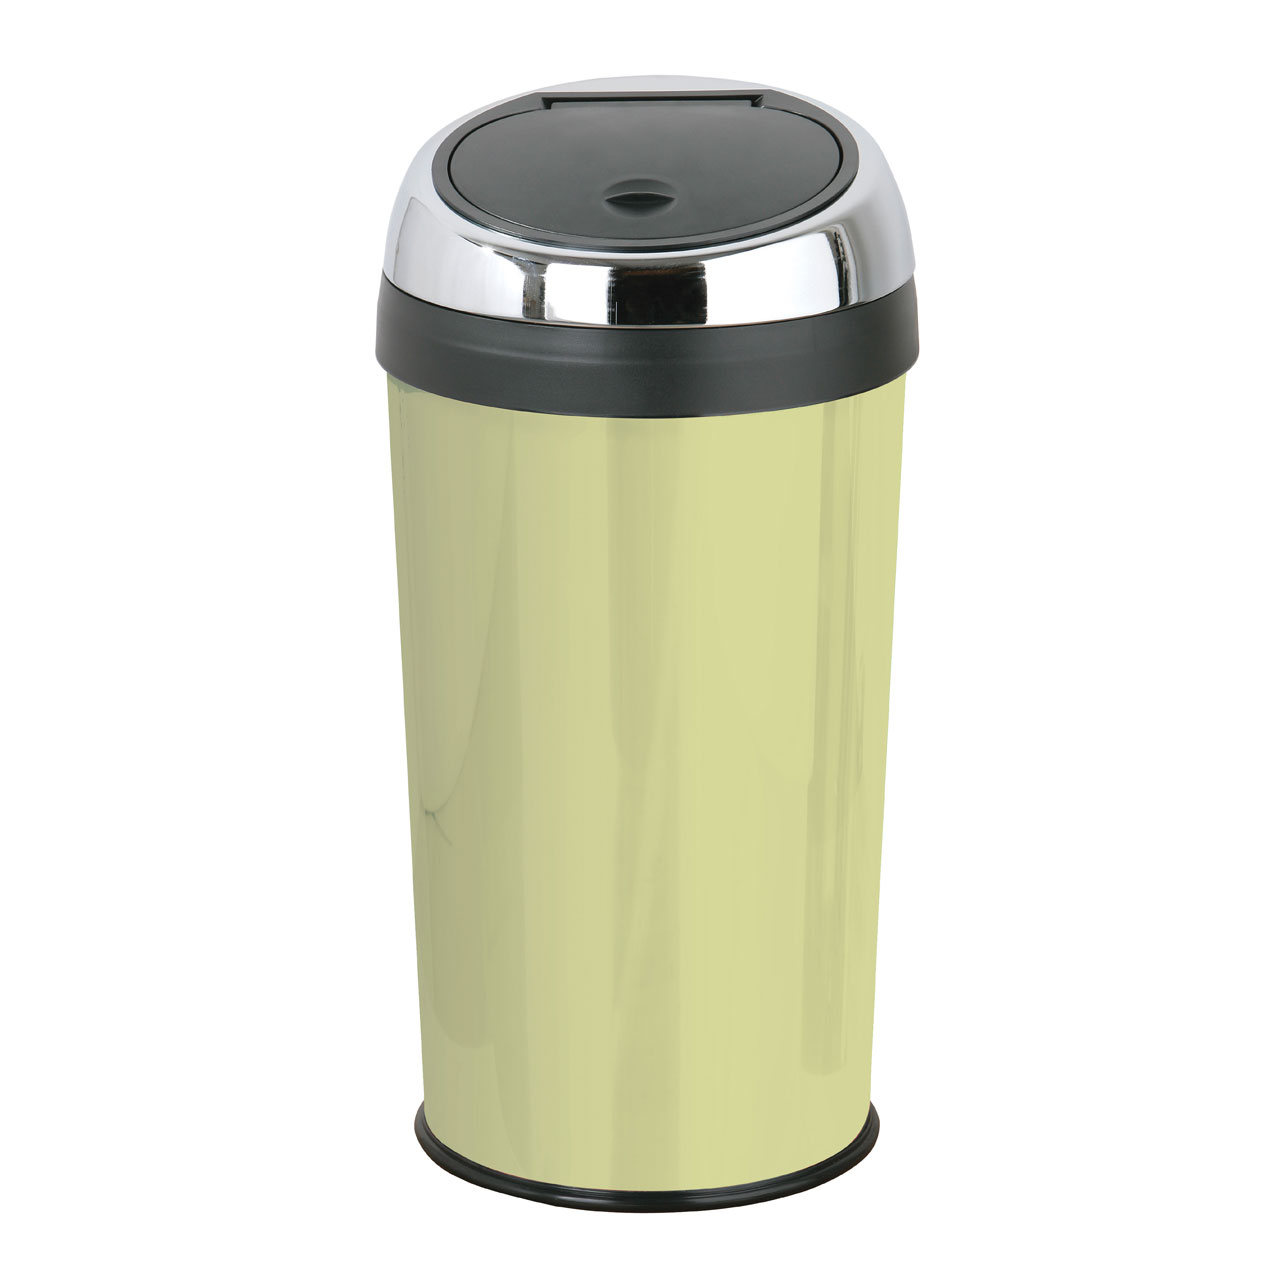 Black Kitchen Bin Sale: 30 Litre Touch Top Trash Kitchen Bin Enamel Stainless